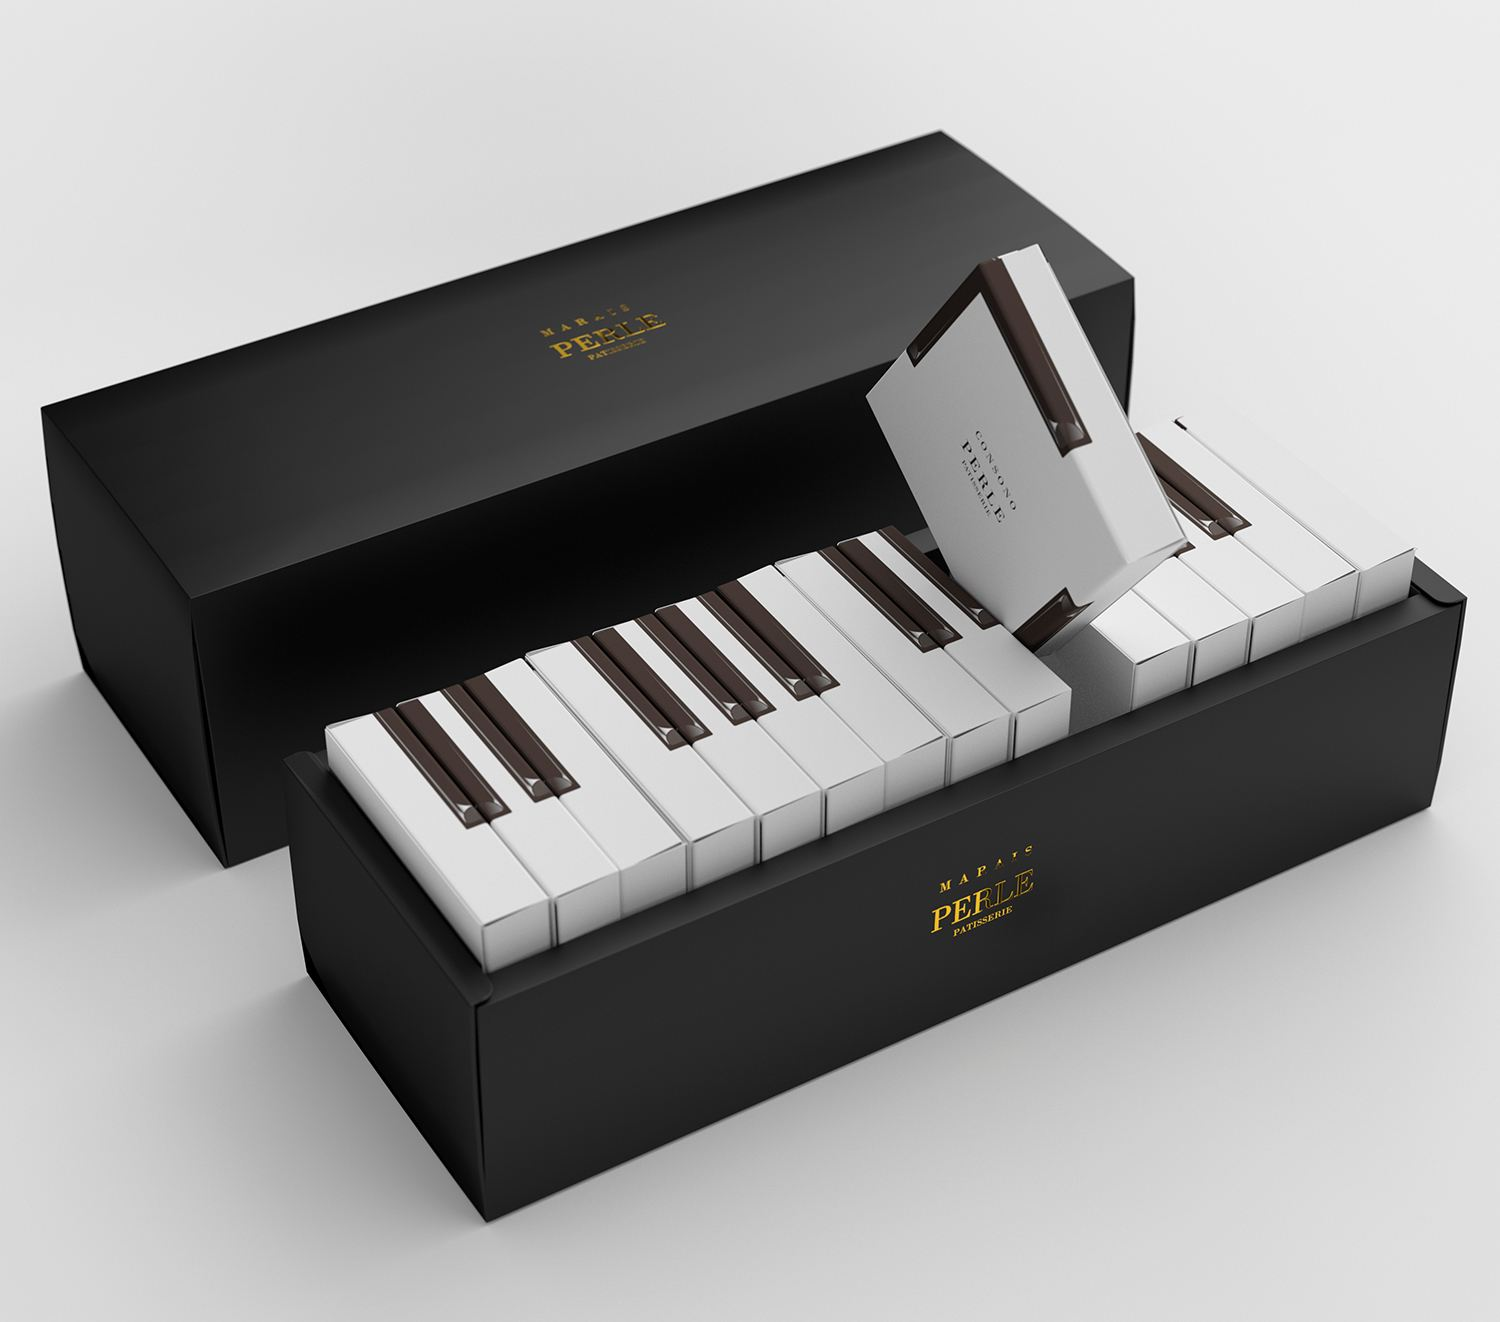 Marais Piano cake packaging by Kazuaki Kawahara